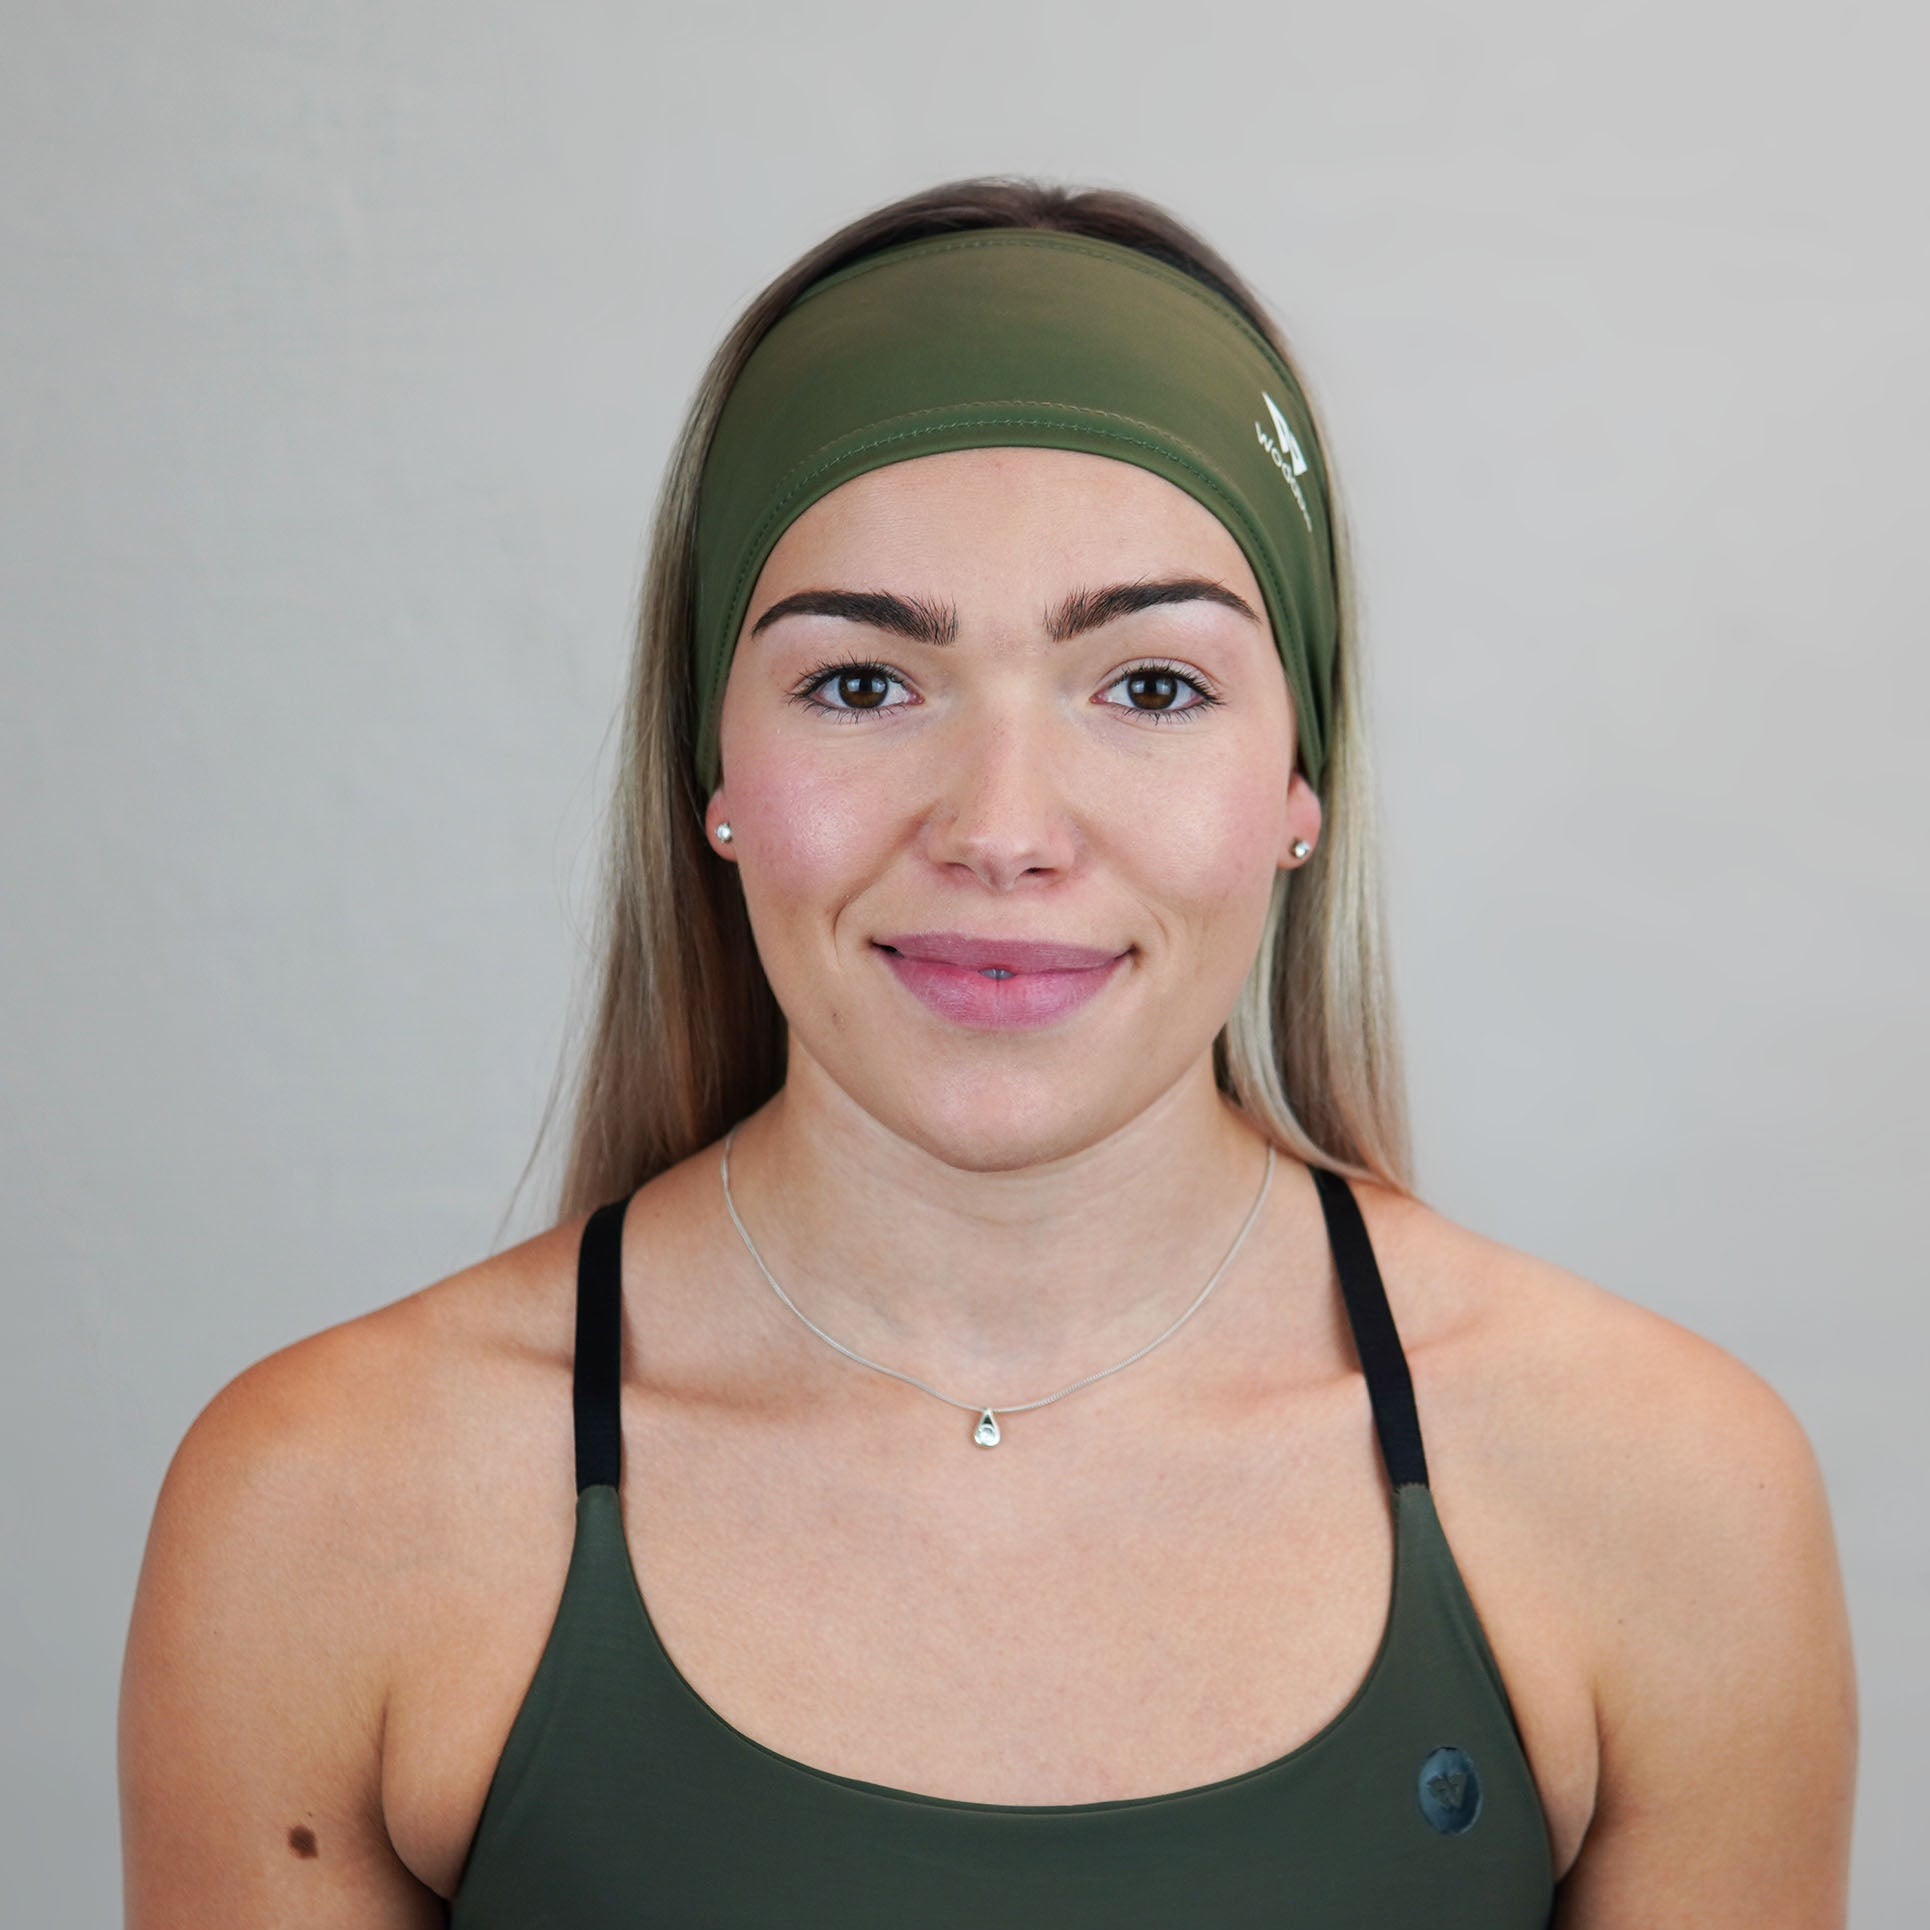 Army Green Headband